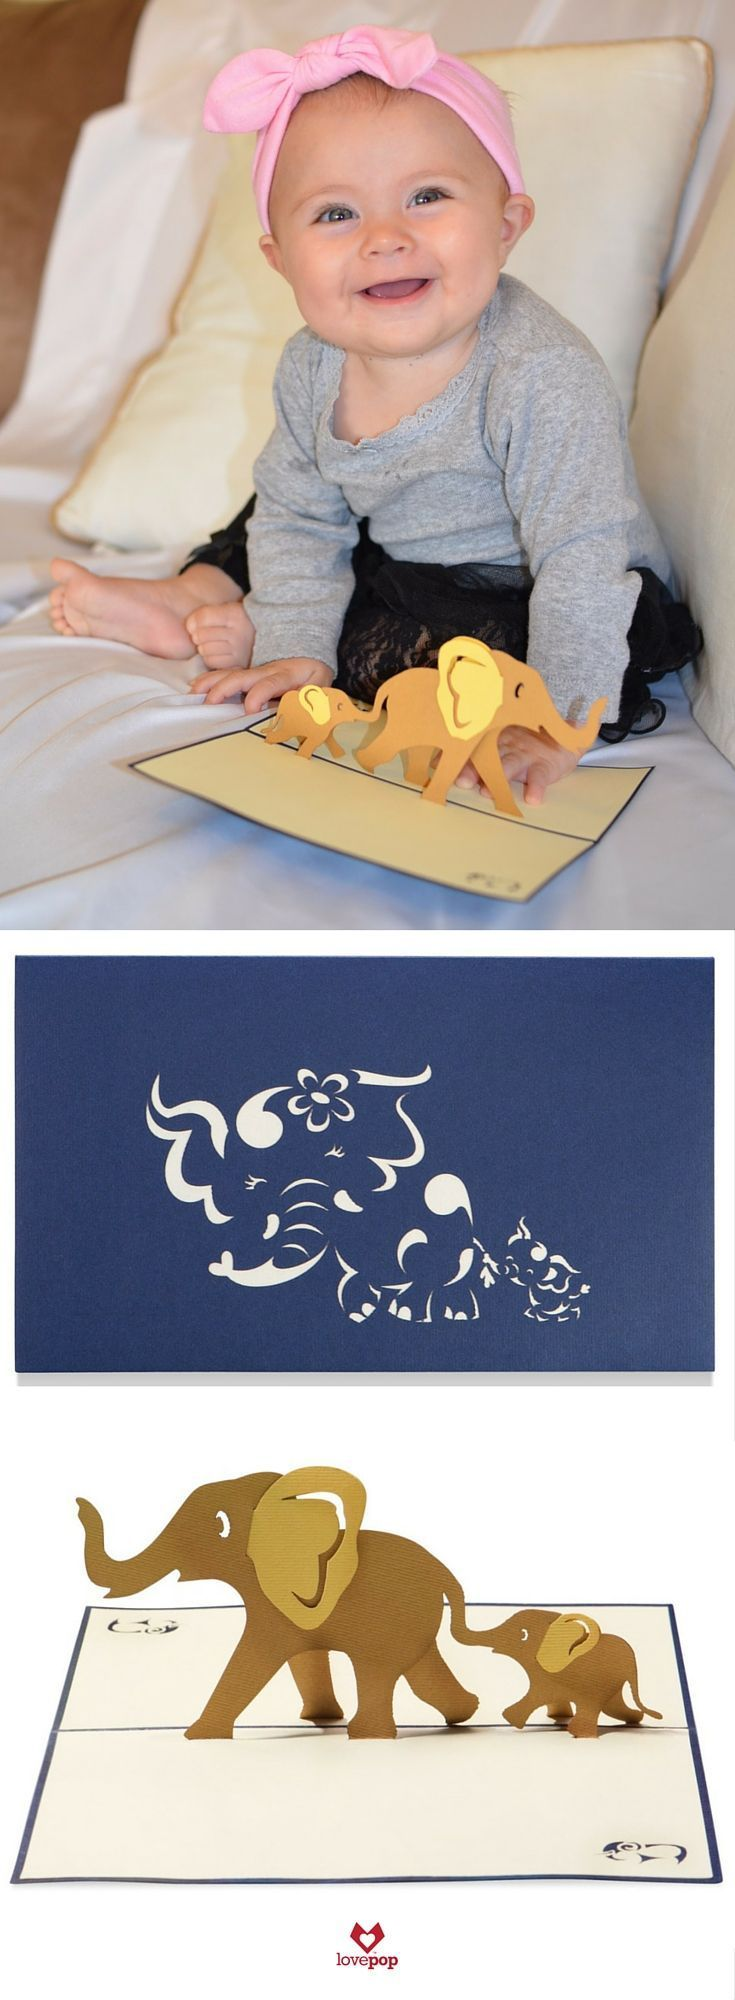 992 Best Pop Up Images On Pinterest Kirigami Pop Up Cards And 3d